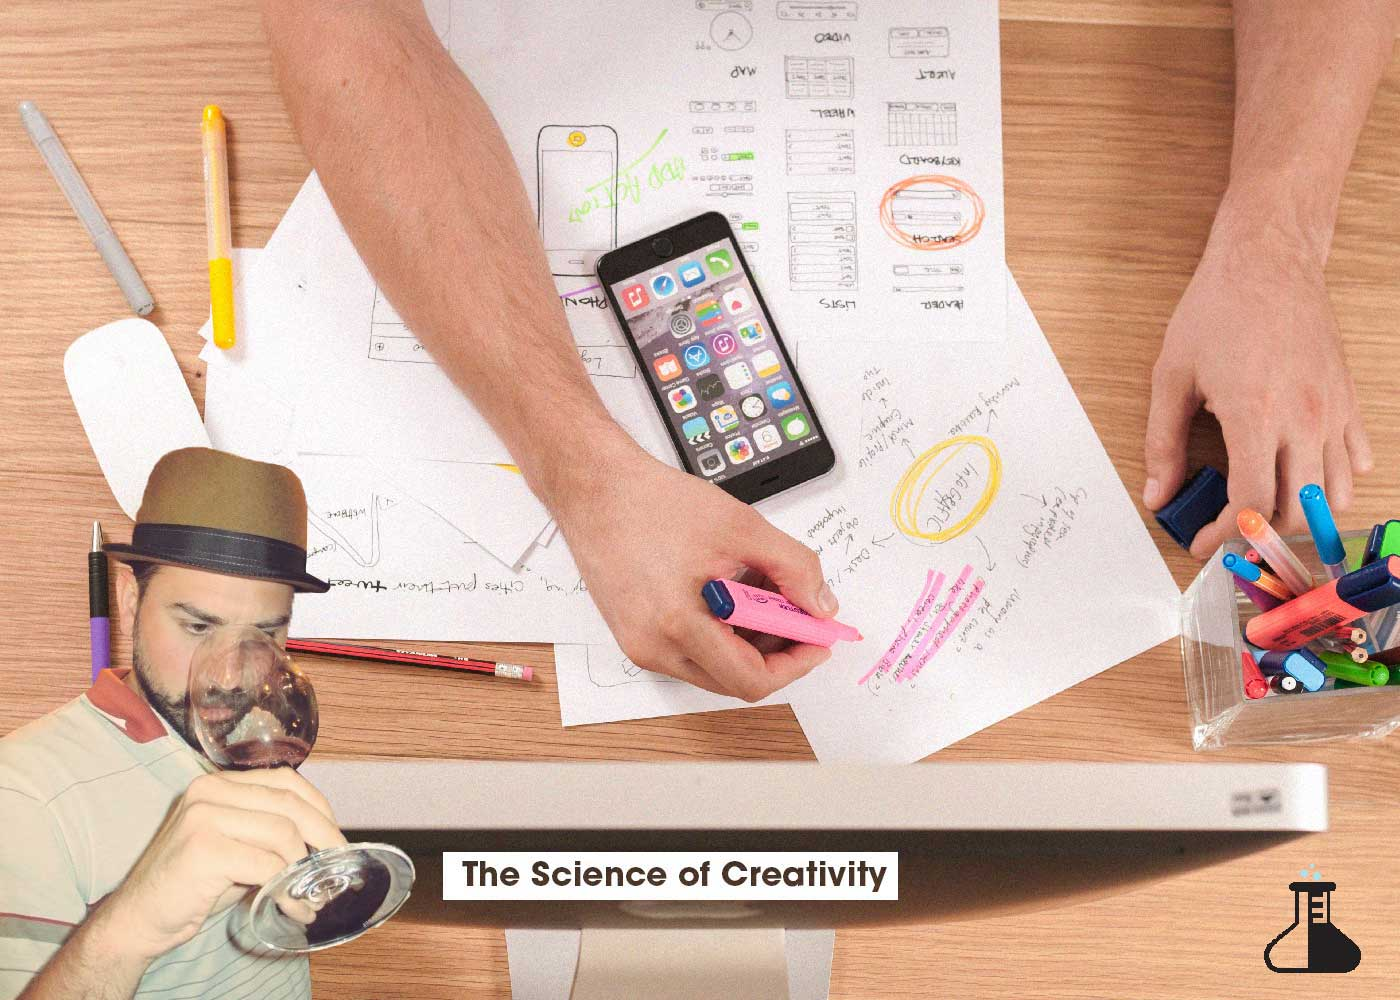 the header image for the science of creativity